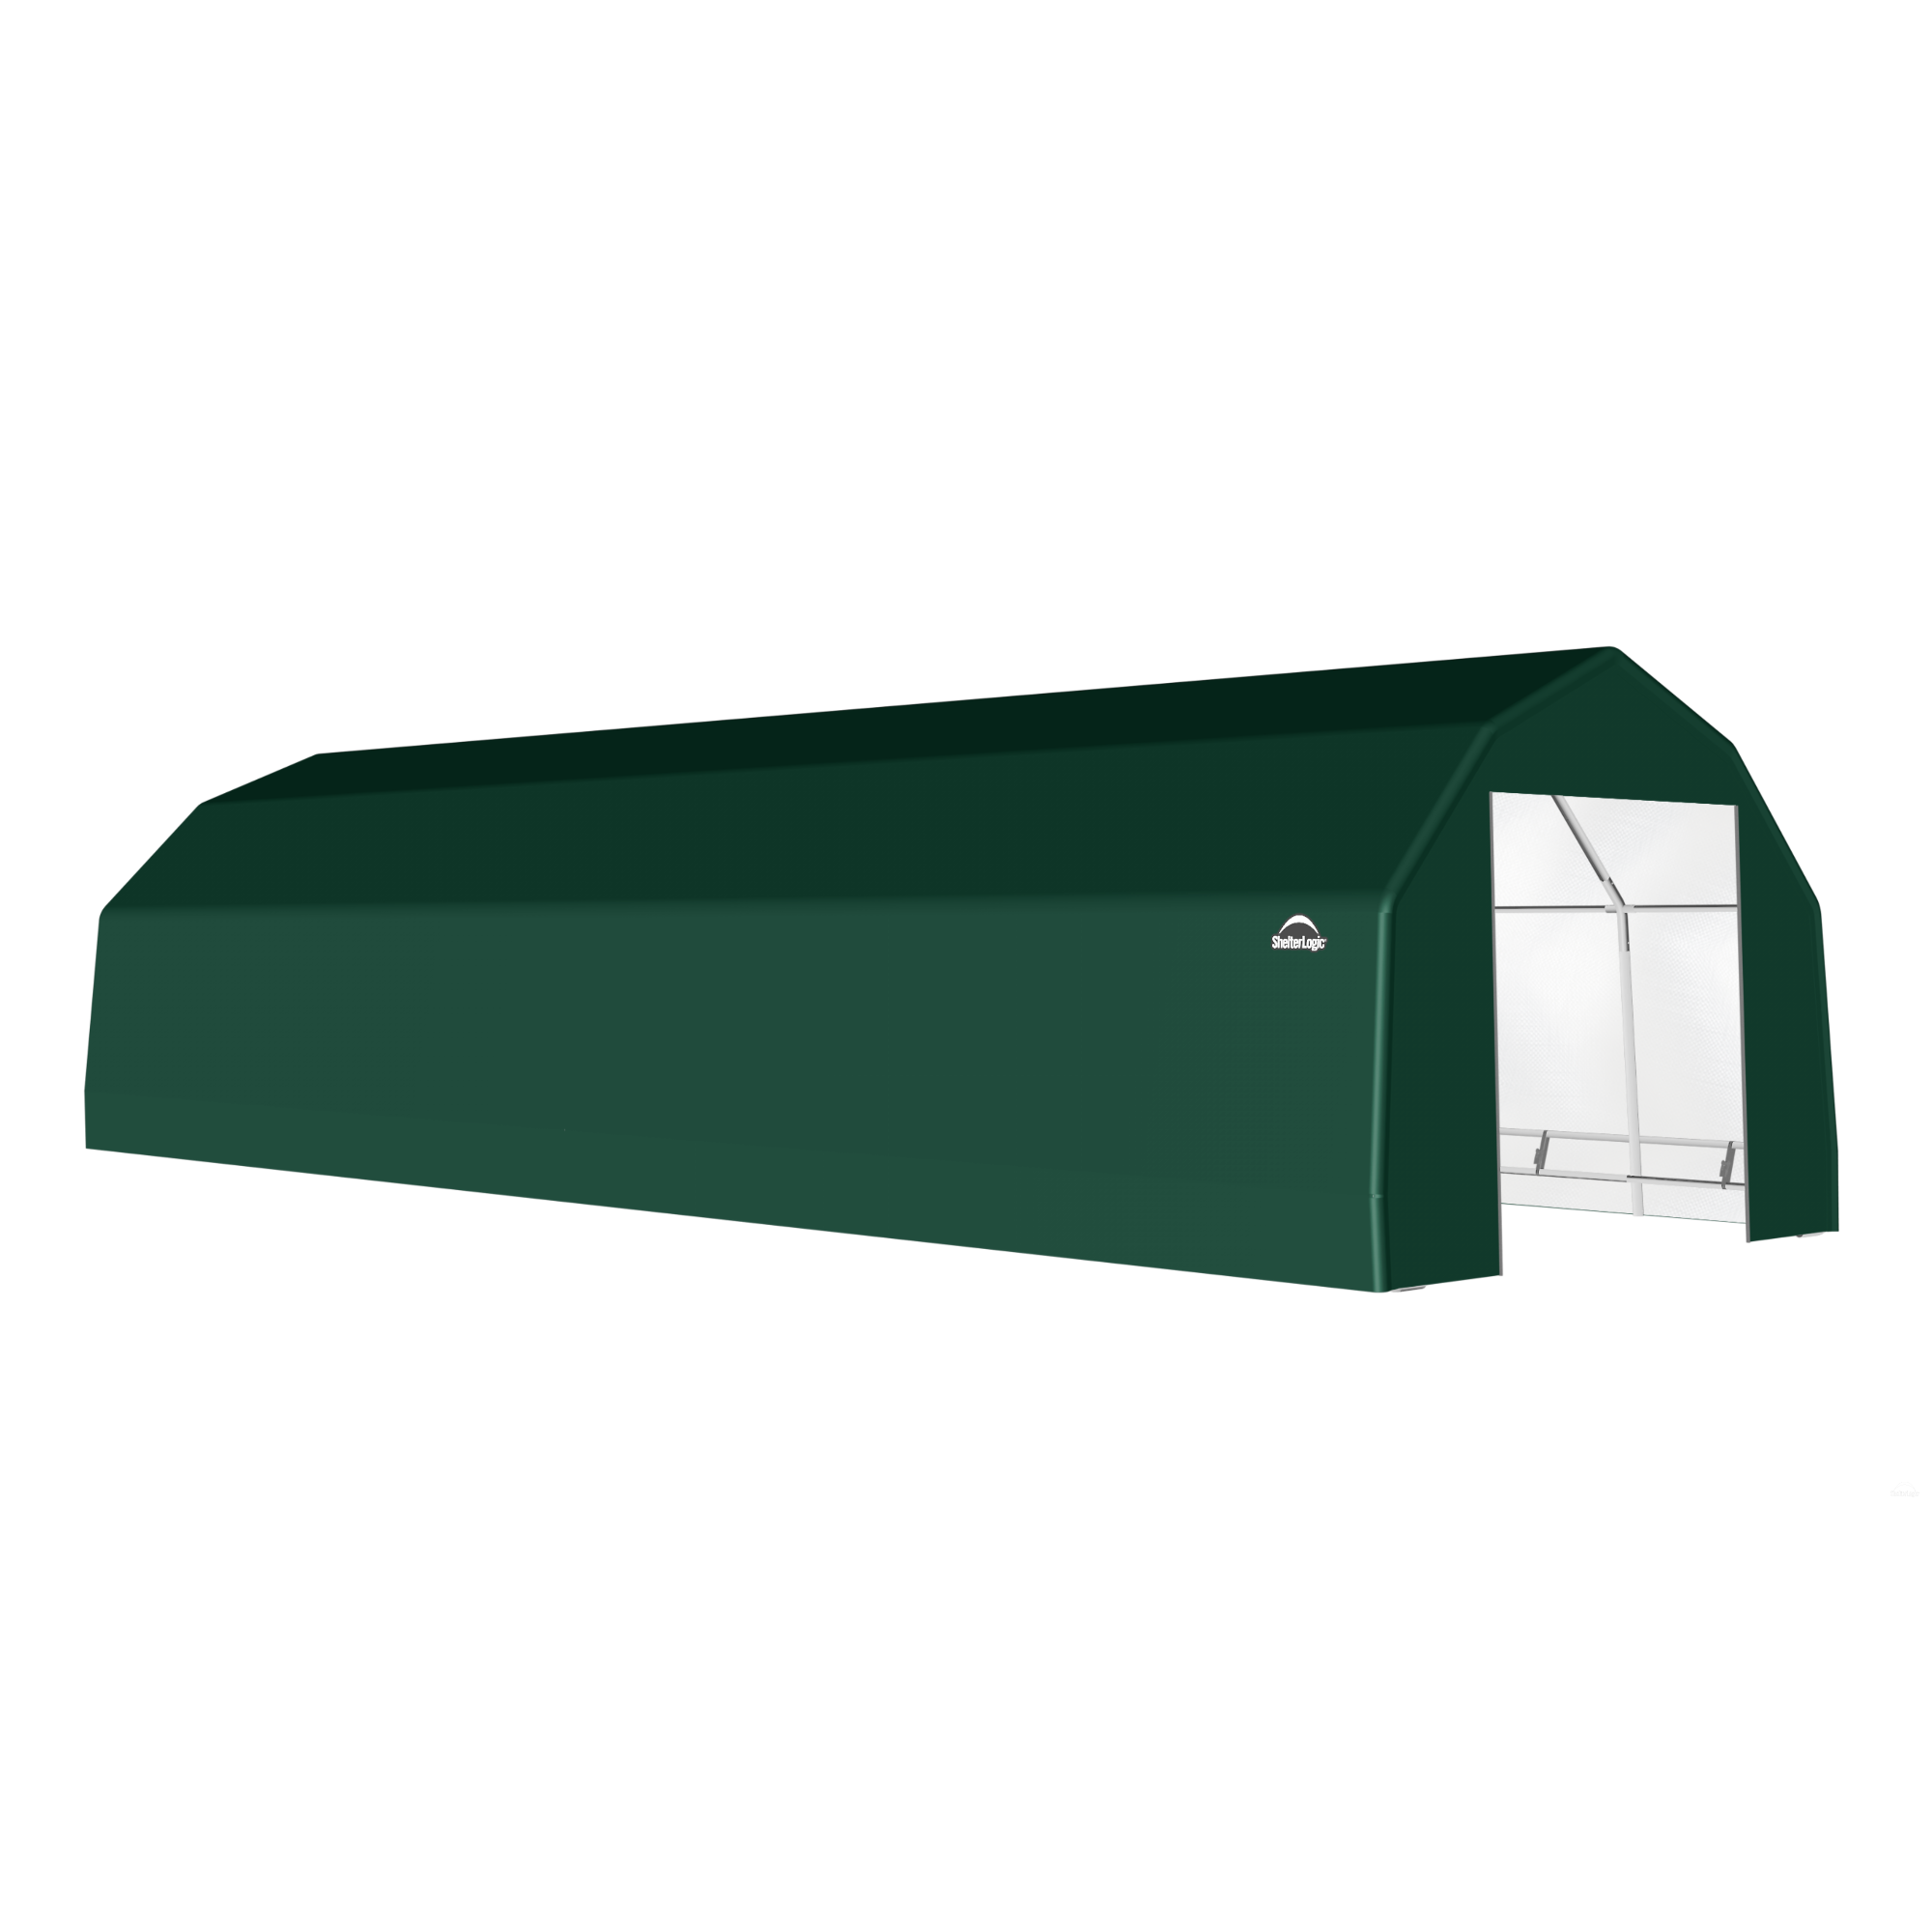 SP Barn 15X36X11 Green 14 oz PE Shelter